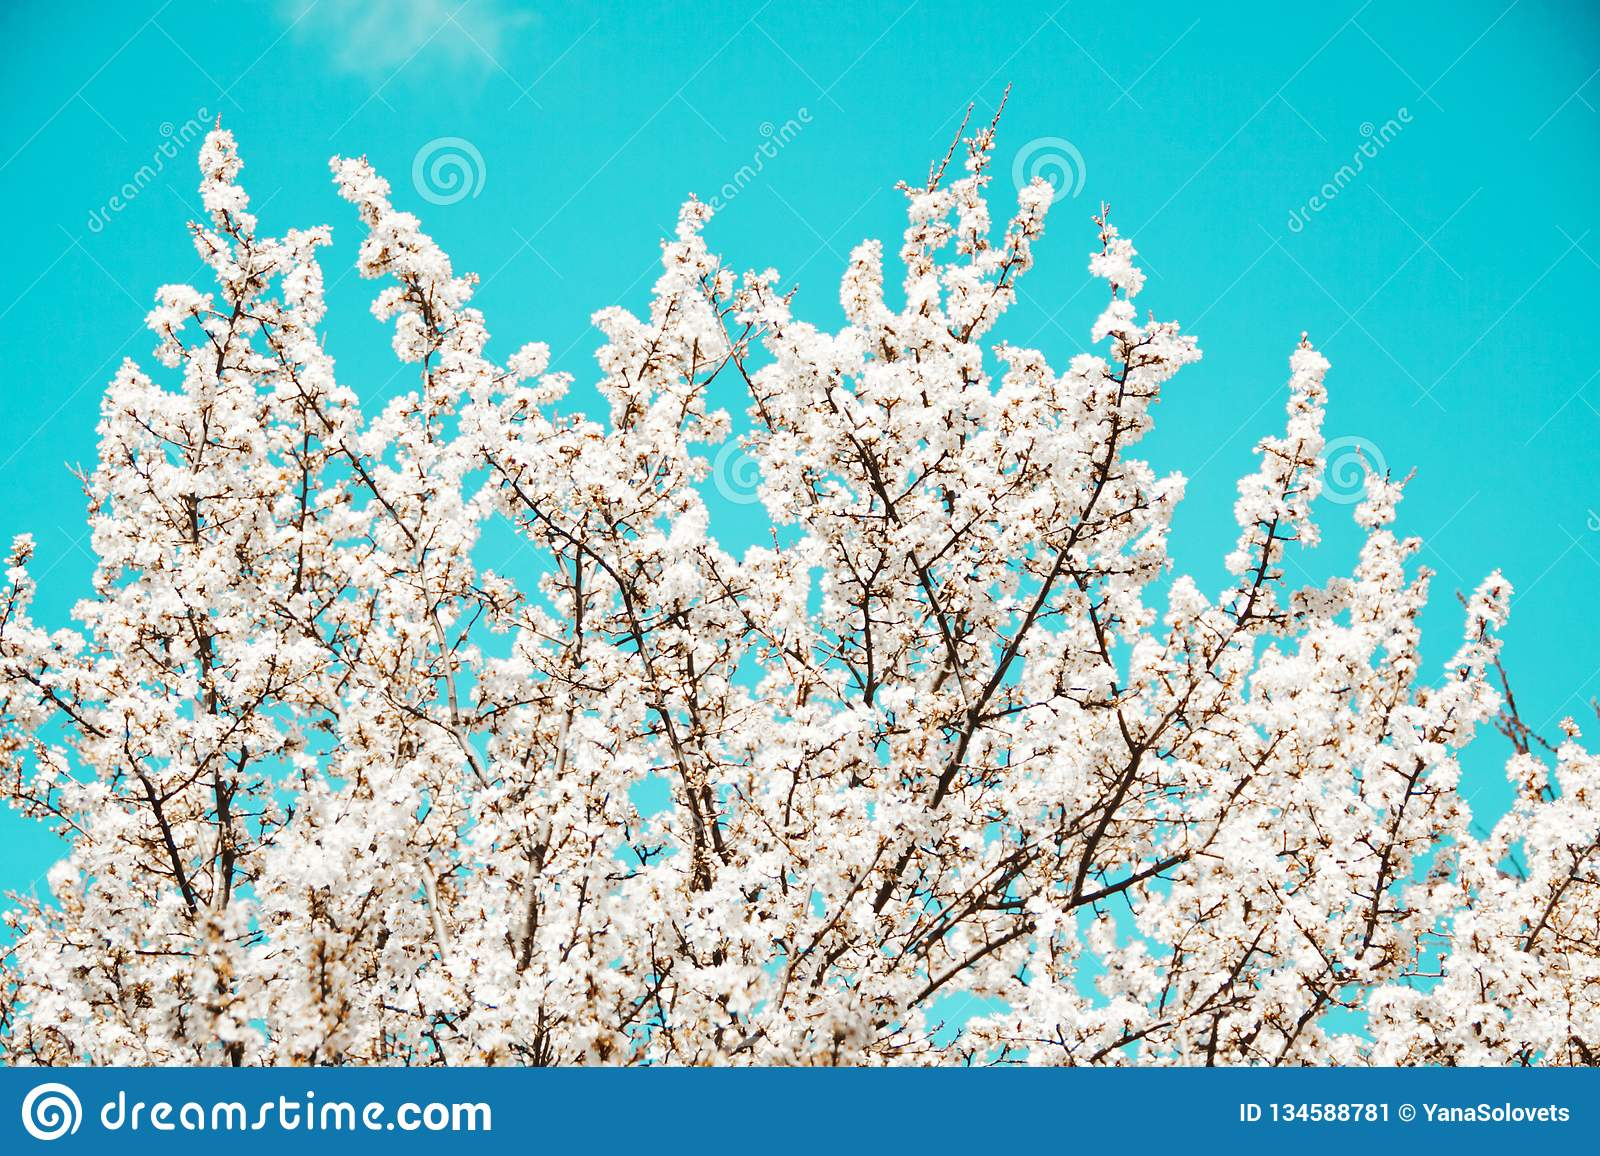 Spring mood. Fresh blue background with white blooming cherry flowers for the holidays